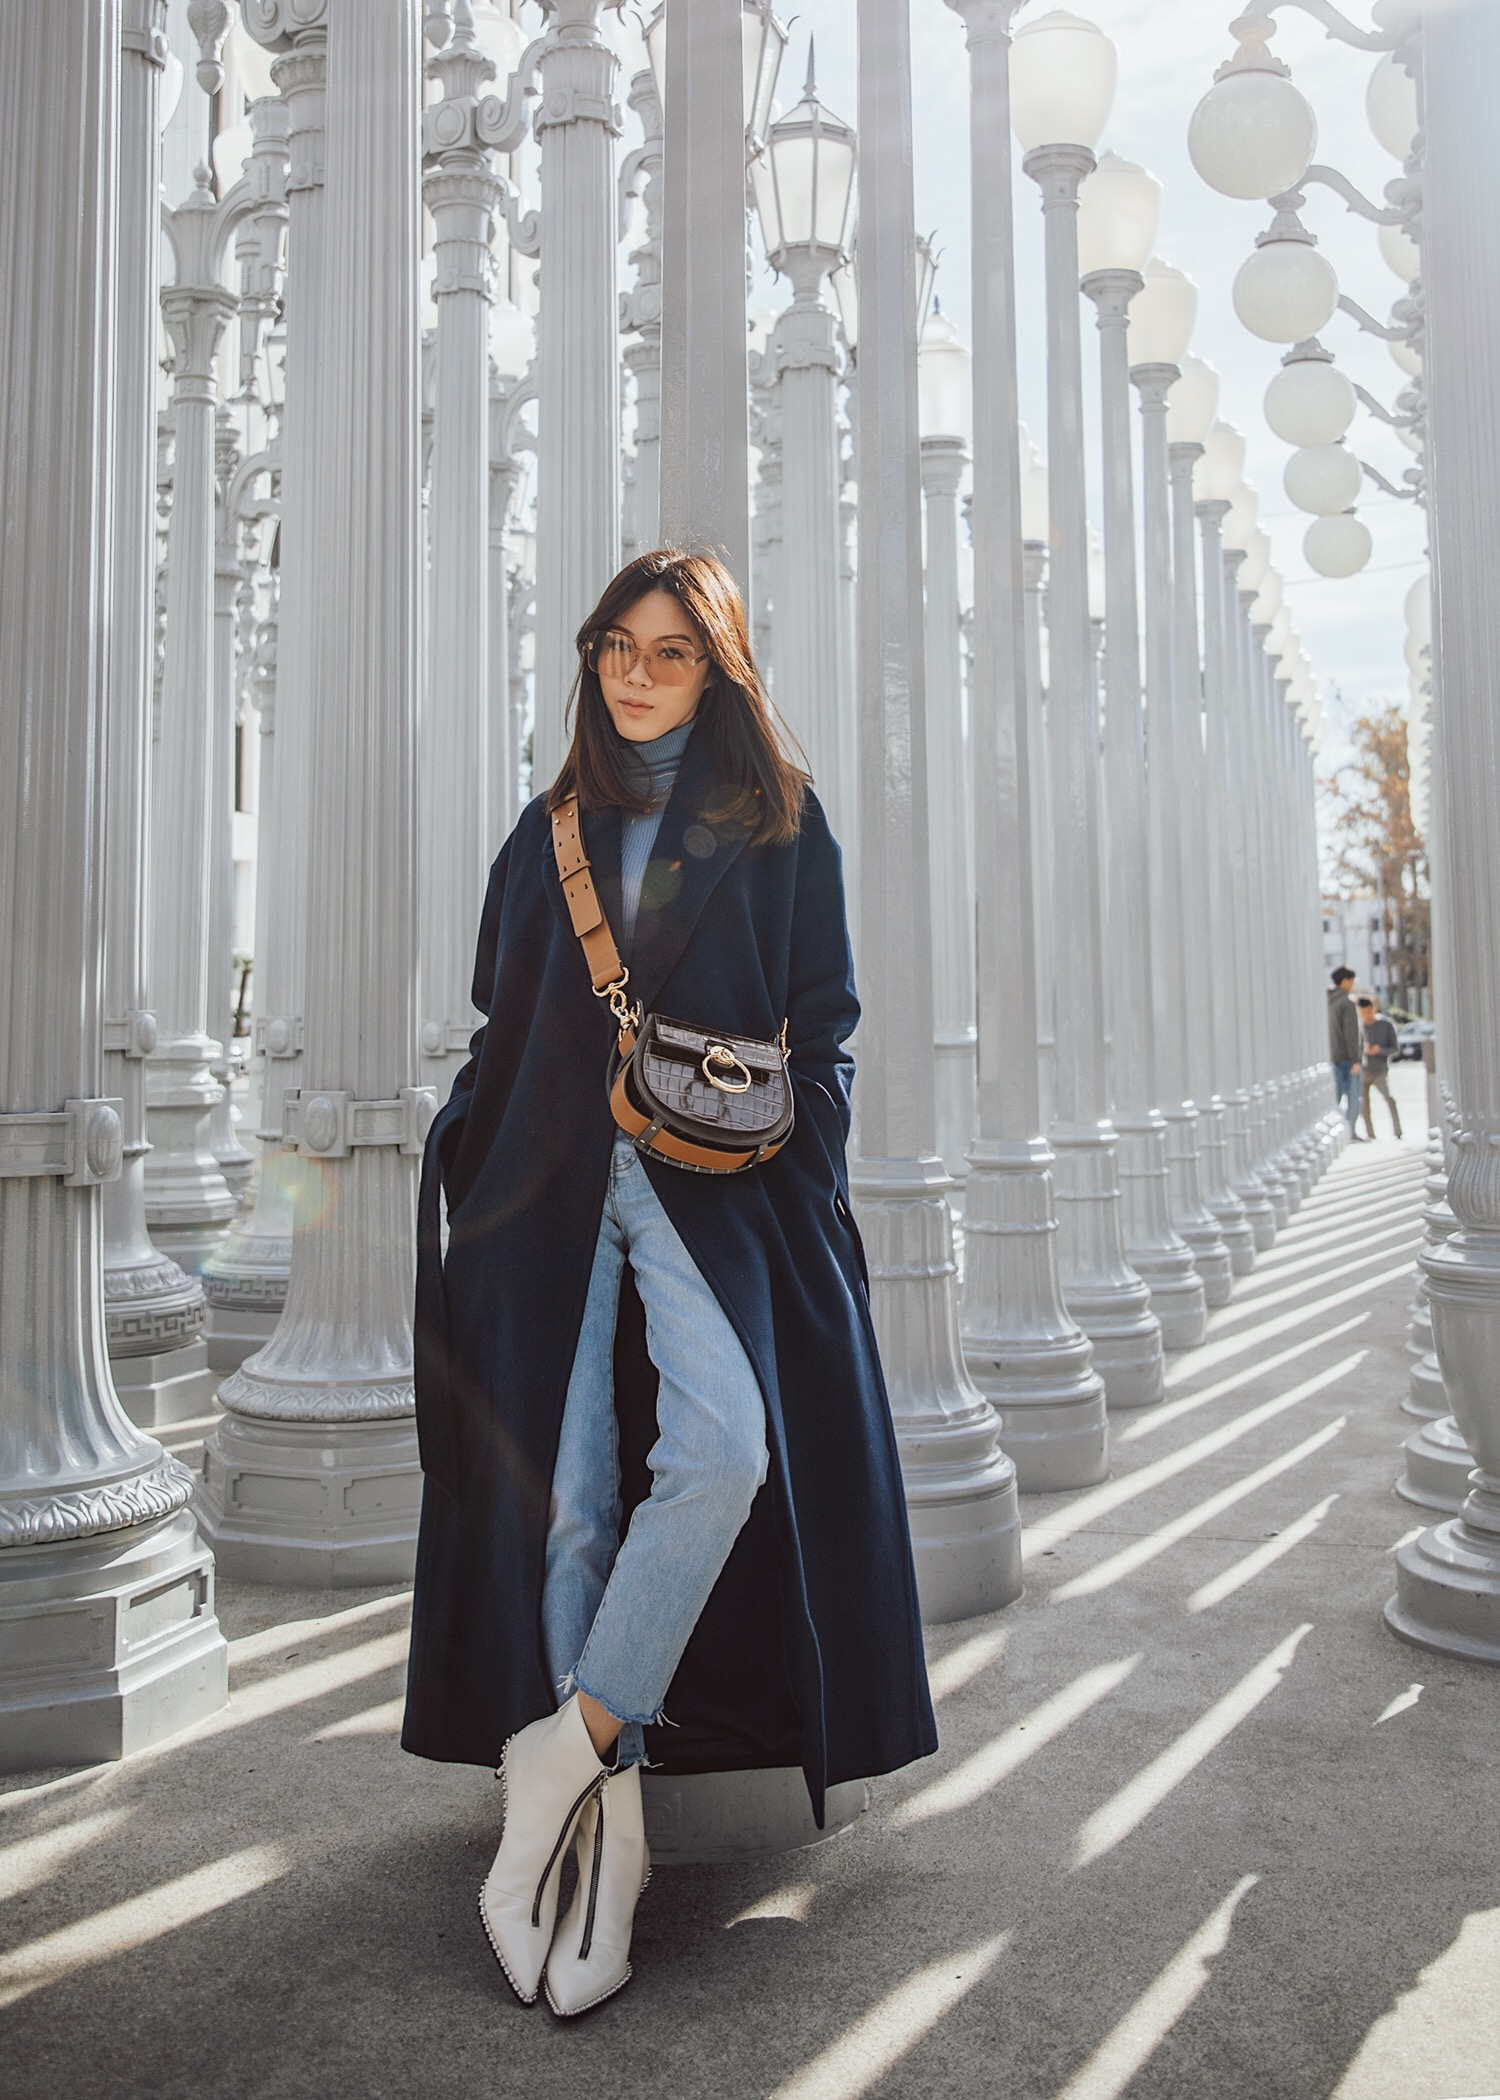 Jenny Tsang of Tsangtastic wearing long wool coat with jeans with alexander wang white point toe boots and chloe tess bag in brown